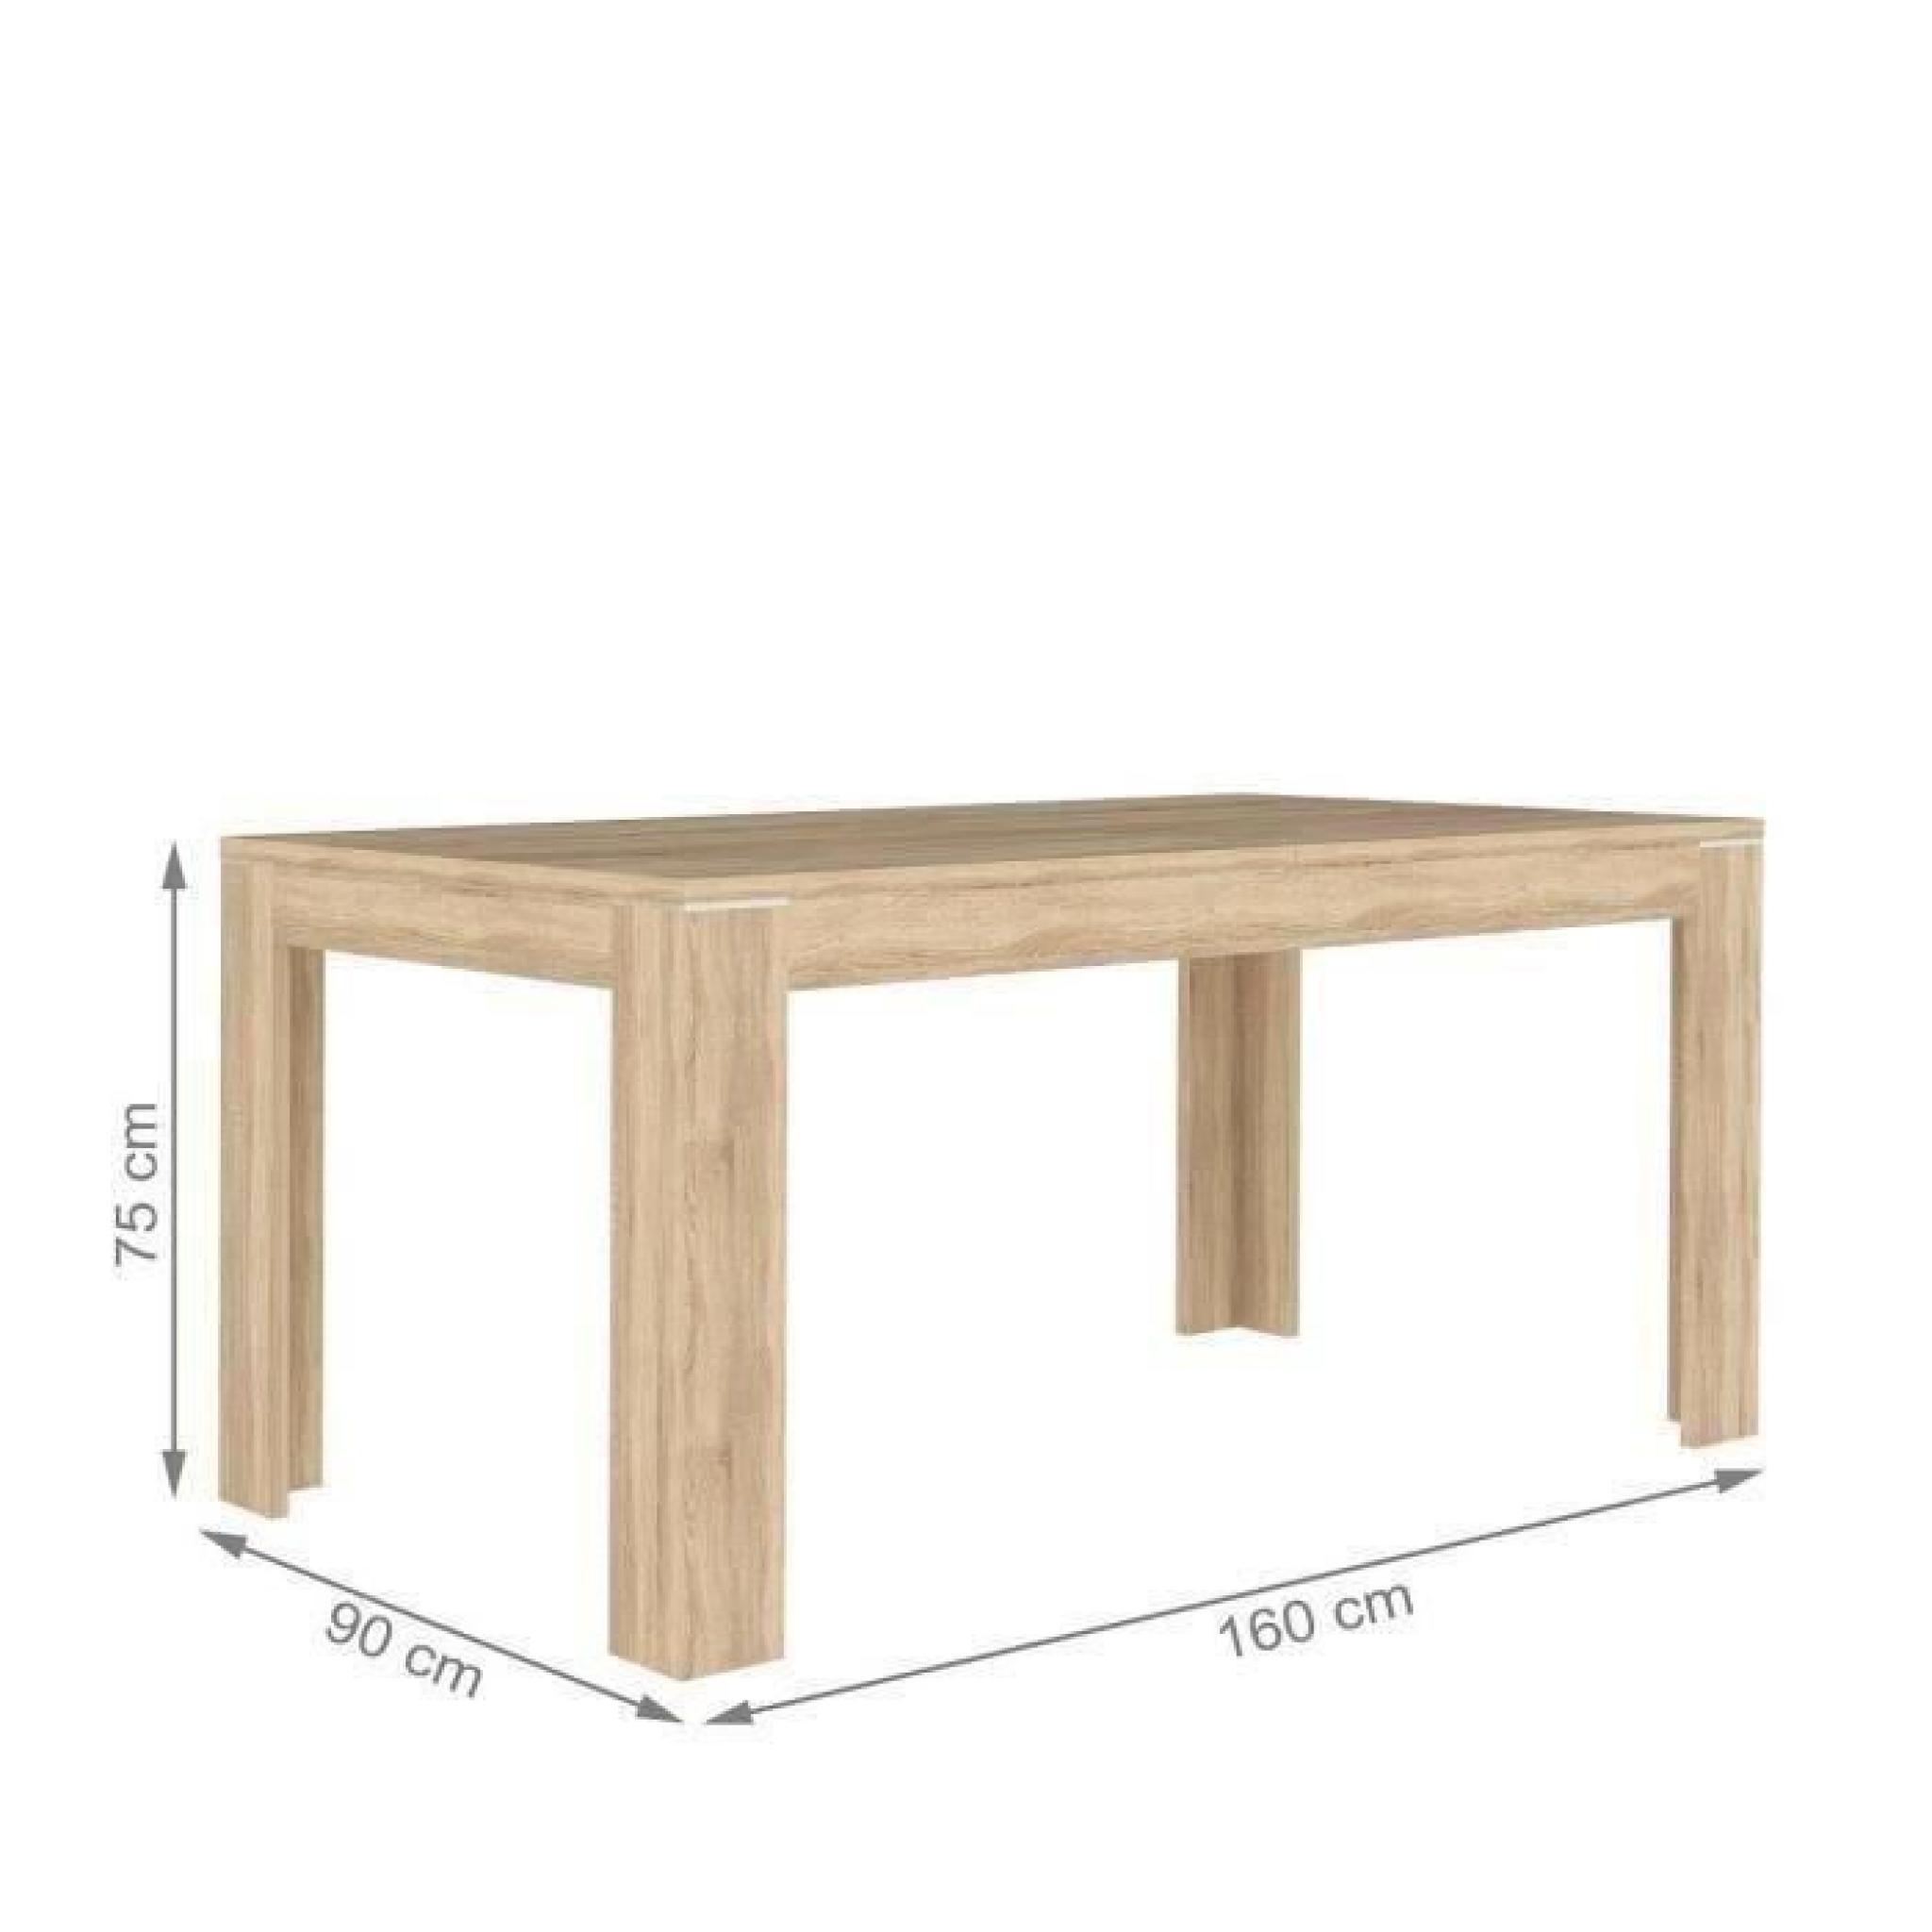 Table salle a manger extensible pas cher maison design for Table salle a manger extensible 3m